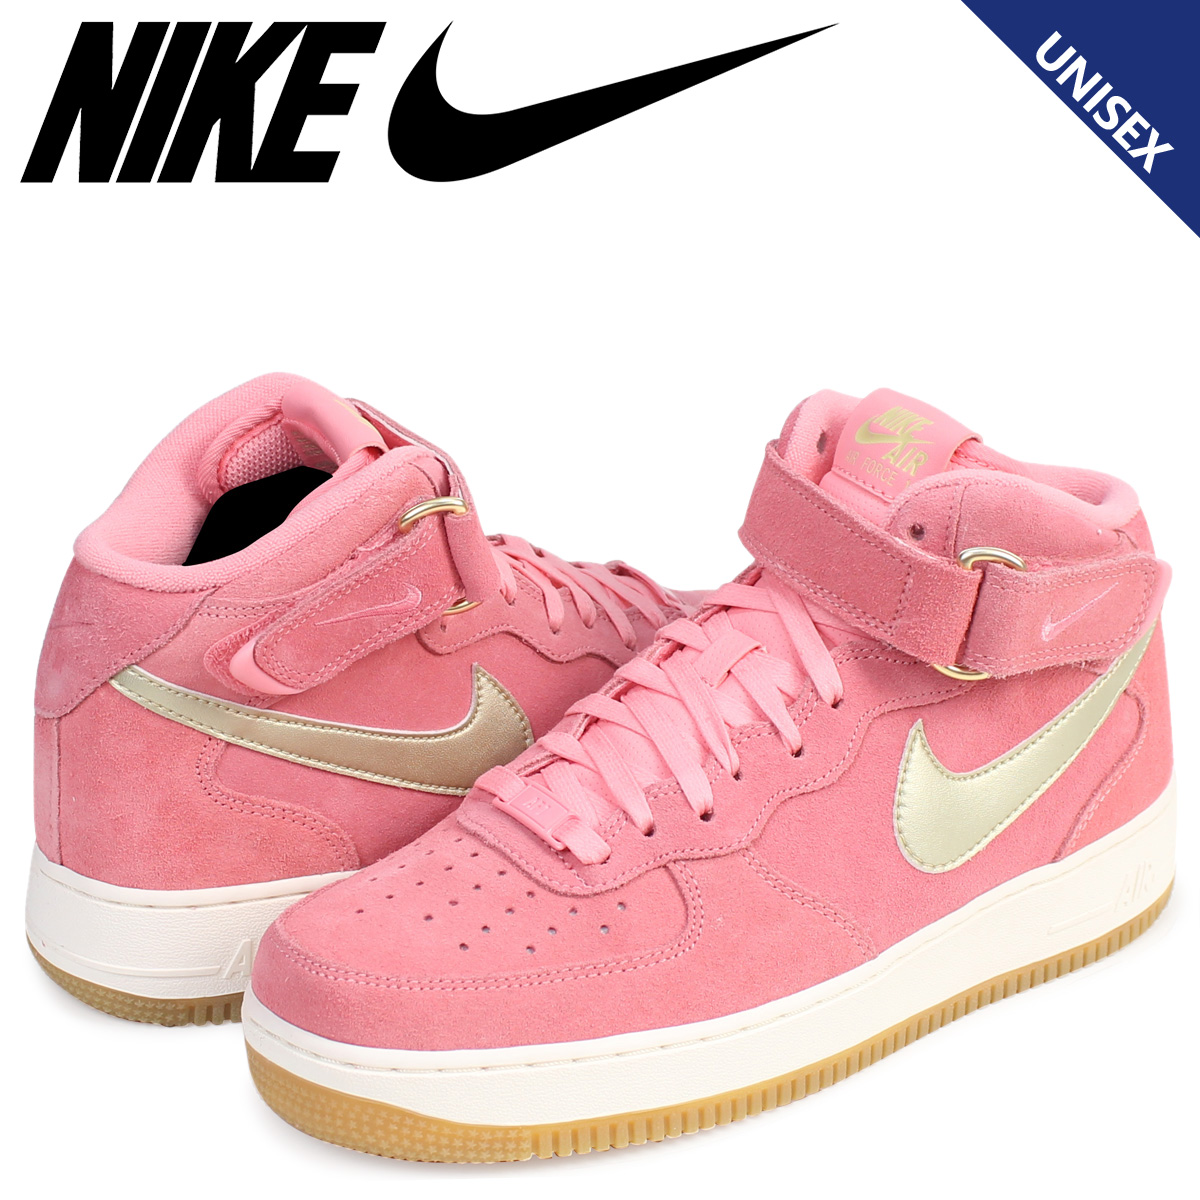 702ac8ab7d5 Whats up Sports  Nike NIKE air force 1 sneakers WMNS AIR FORCE 1 MID 07  SEASONAL 818